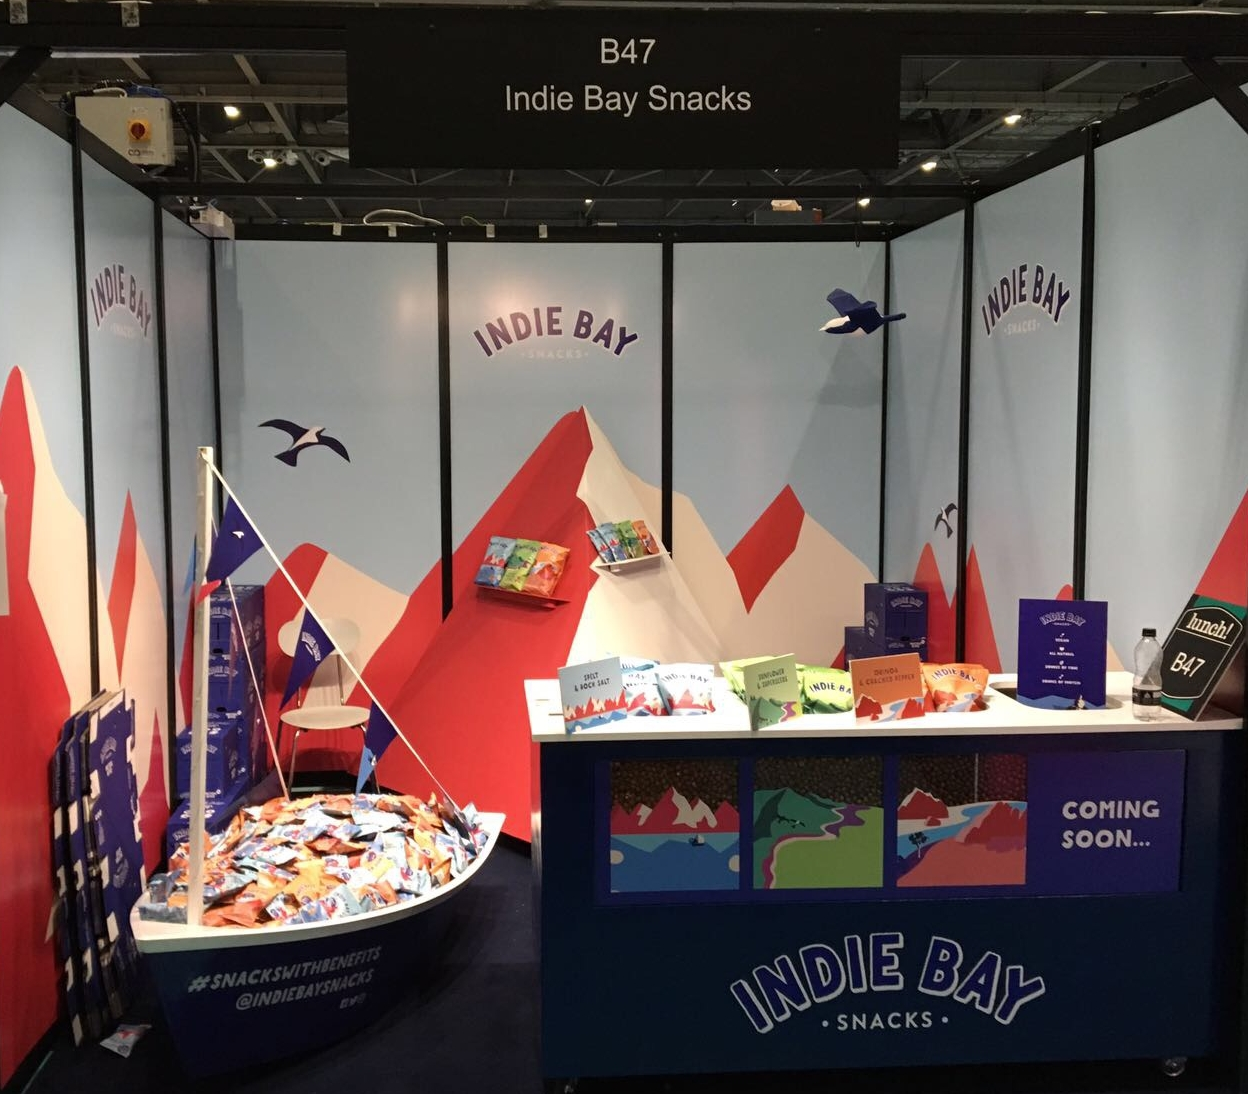 Quirky Group Indie Bay Trade Show Stand built for the exhibition